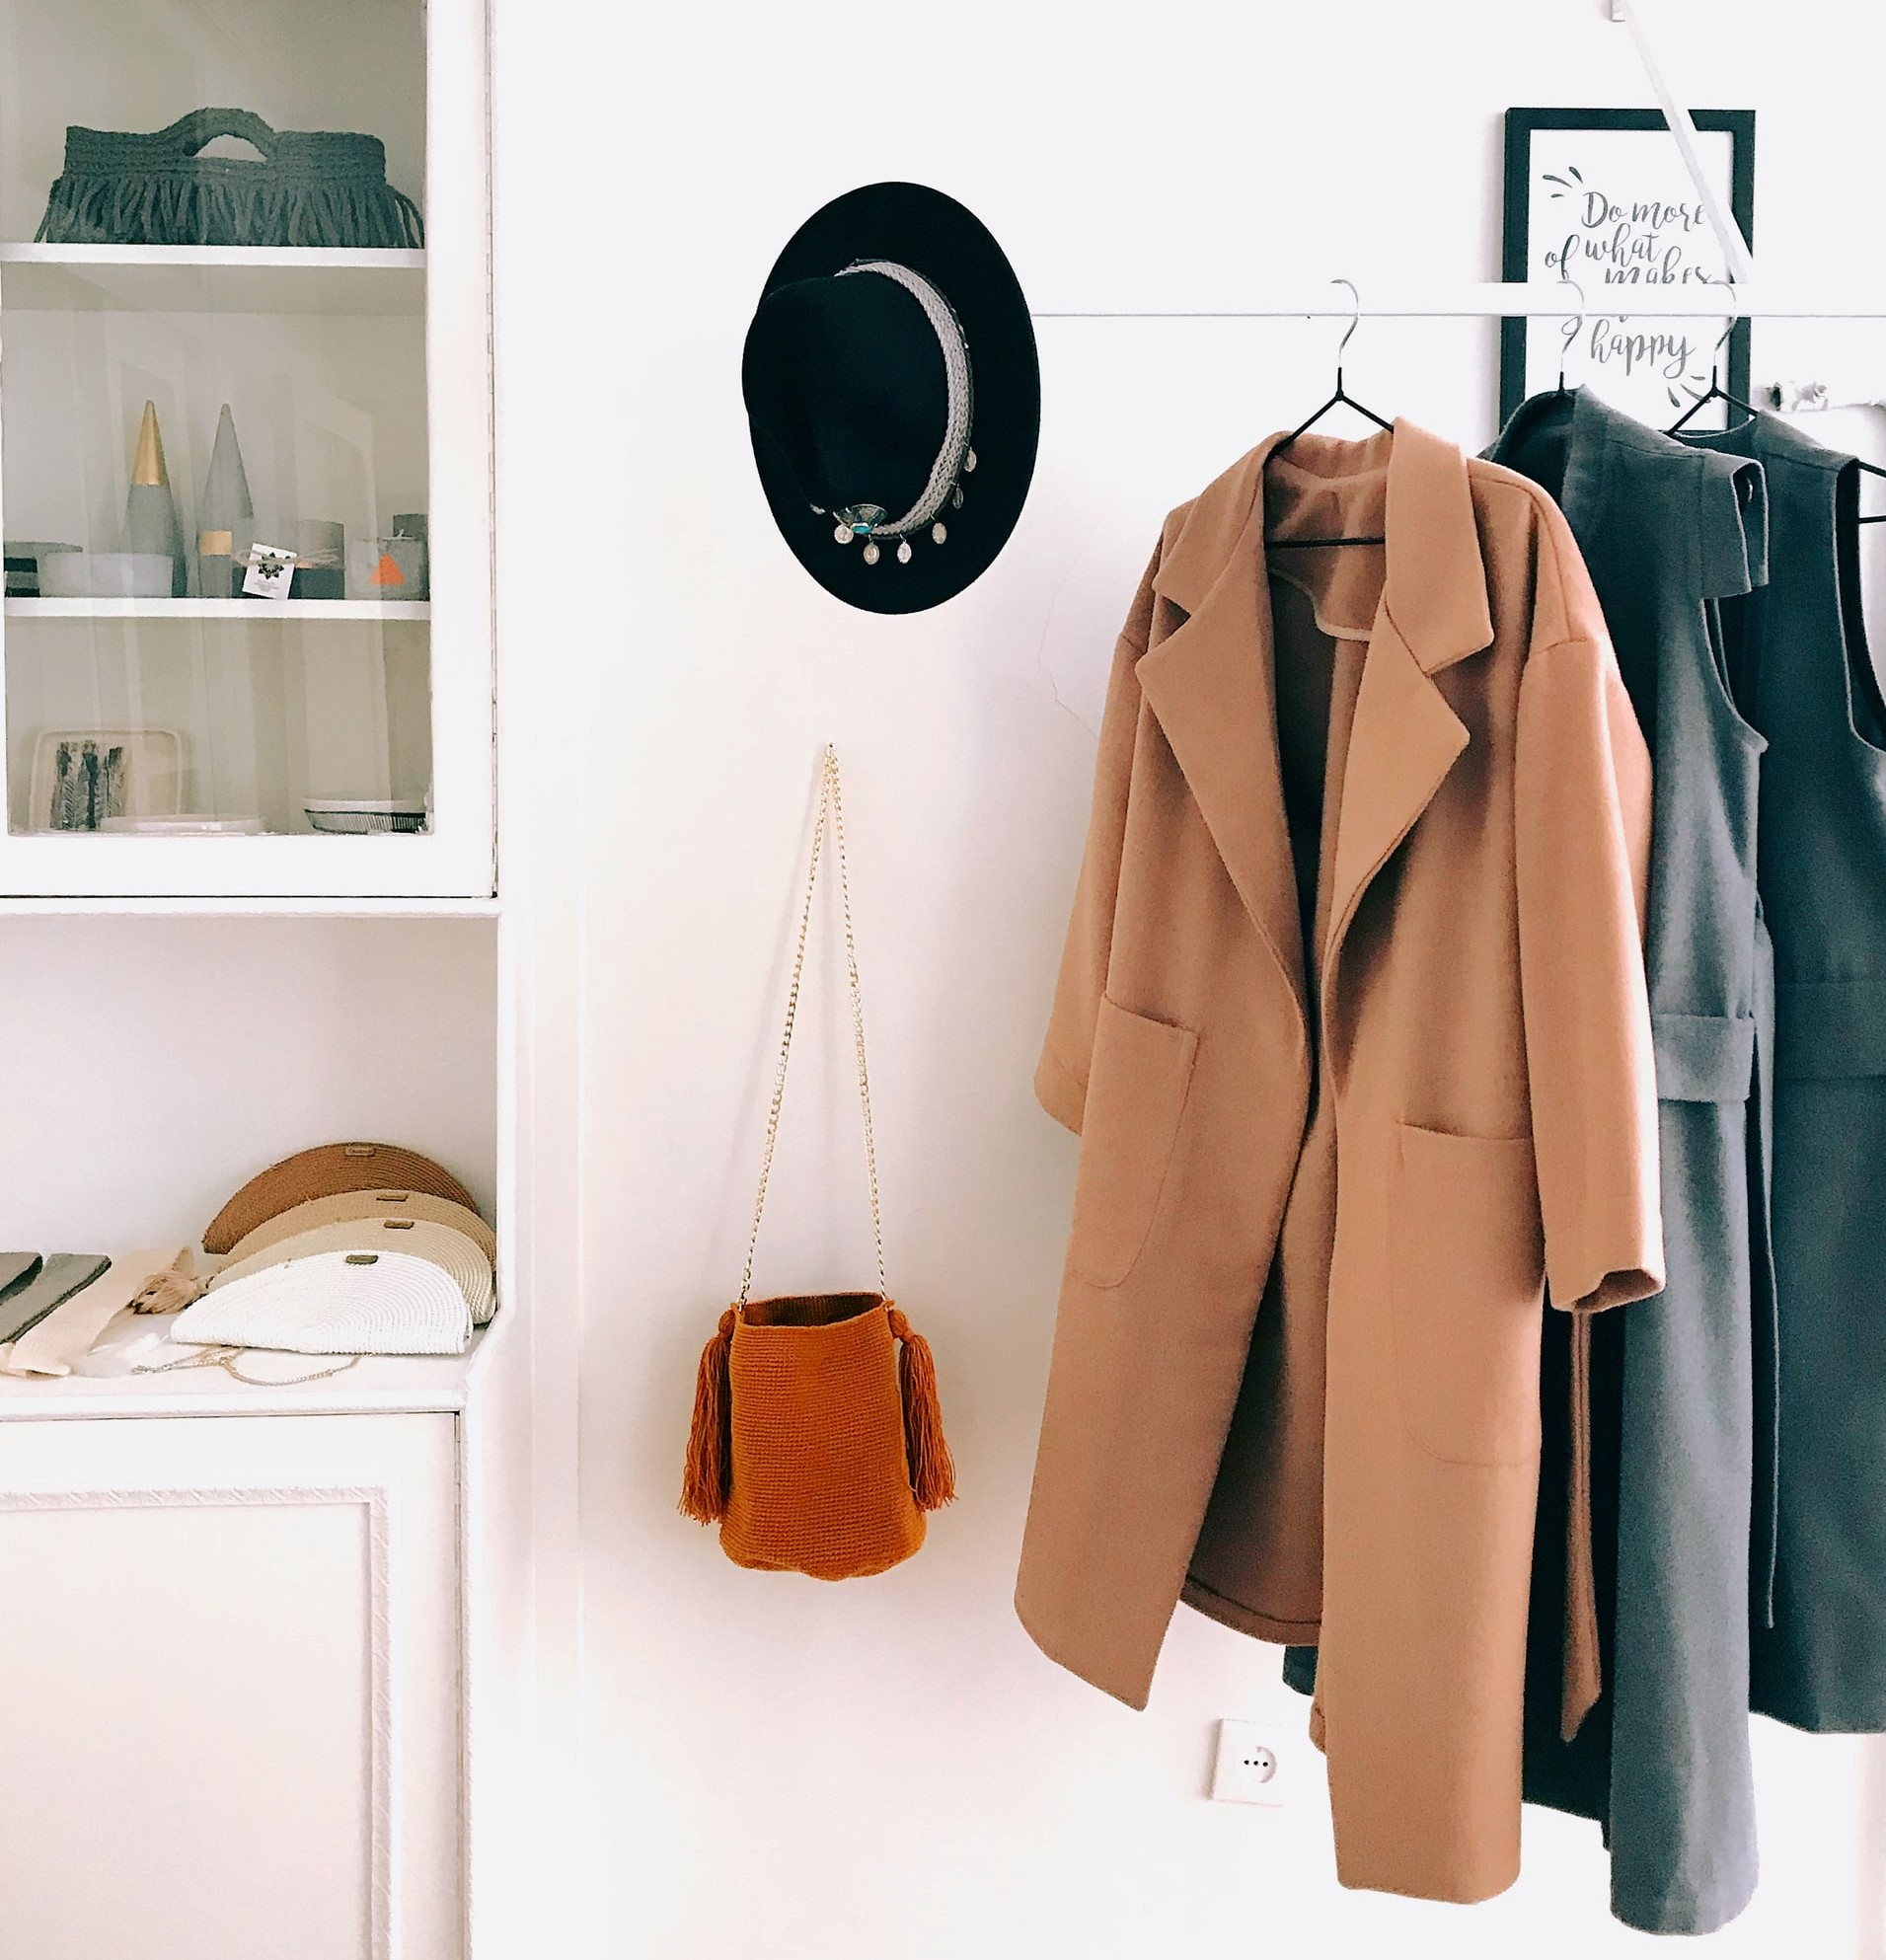 The Trick to Making an Effective Capsule Wardrobe